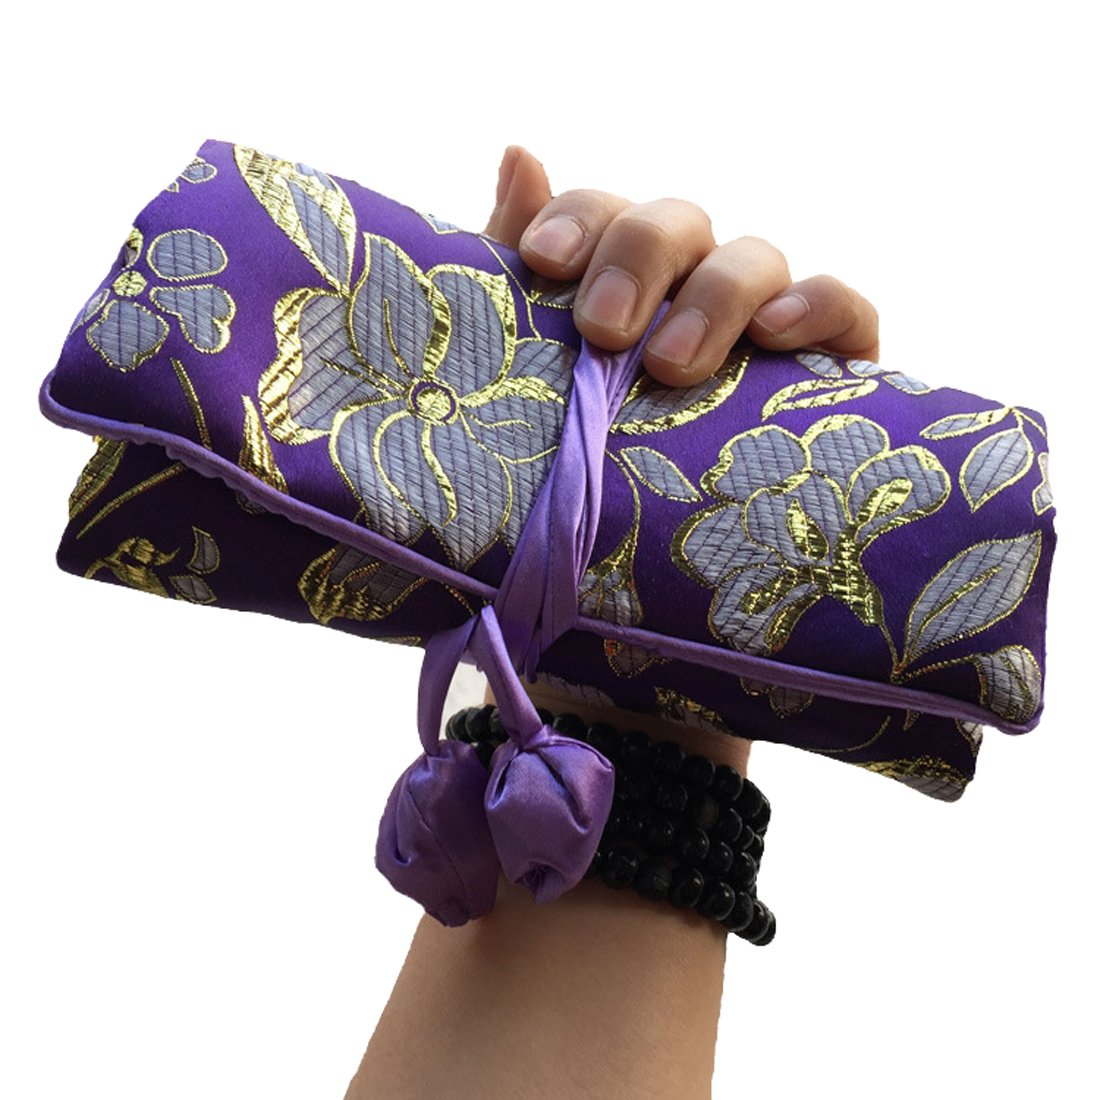 WEI LONG@Jewelry Roll, Travel Jewelry Roll Bag,Silk Embroidery Brocade Jewelry Organizer Case with Tie Close, (Golden Flower, Purple)